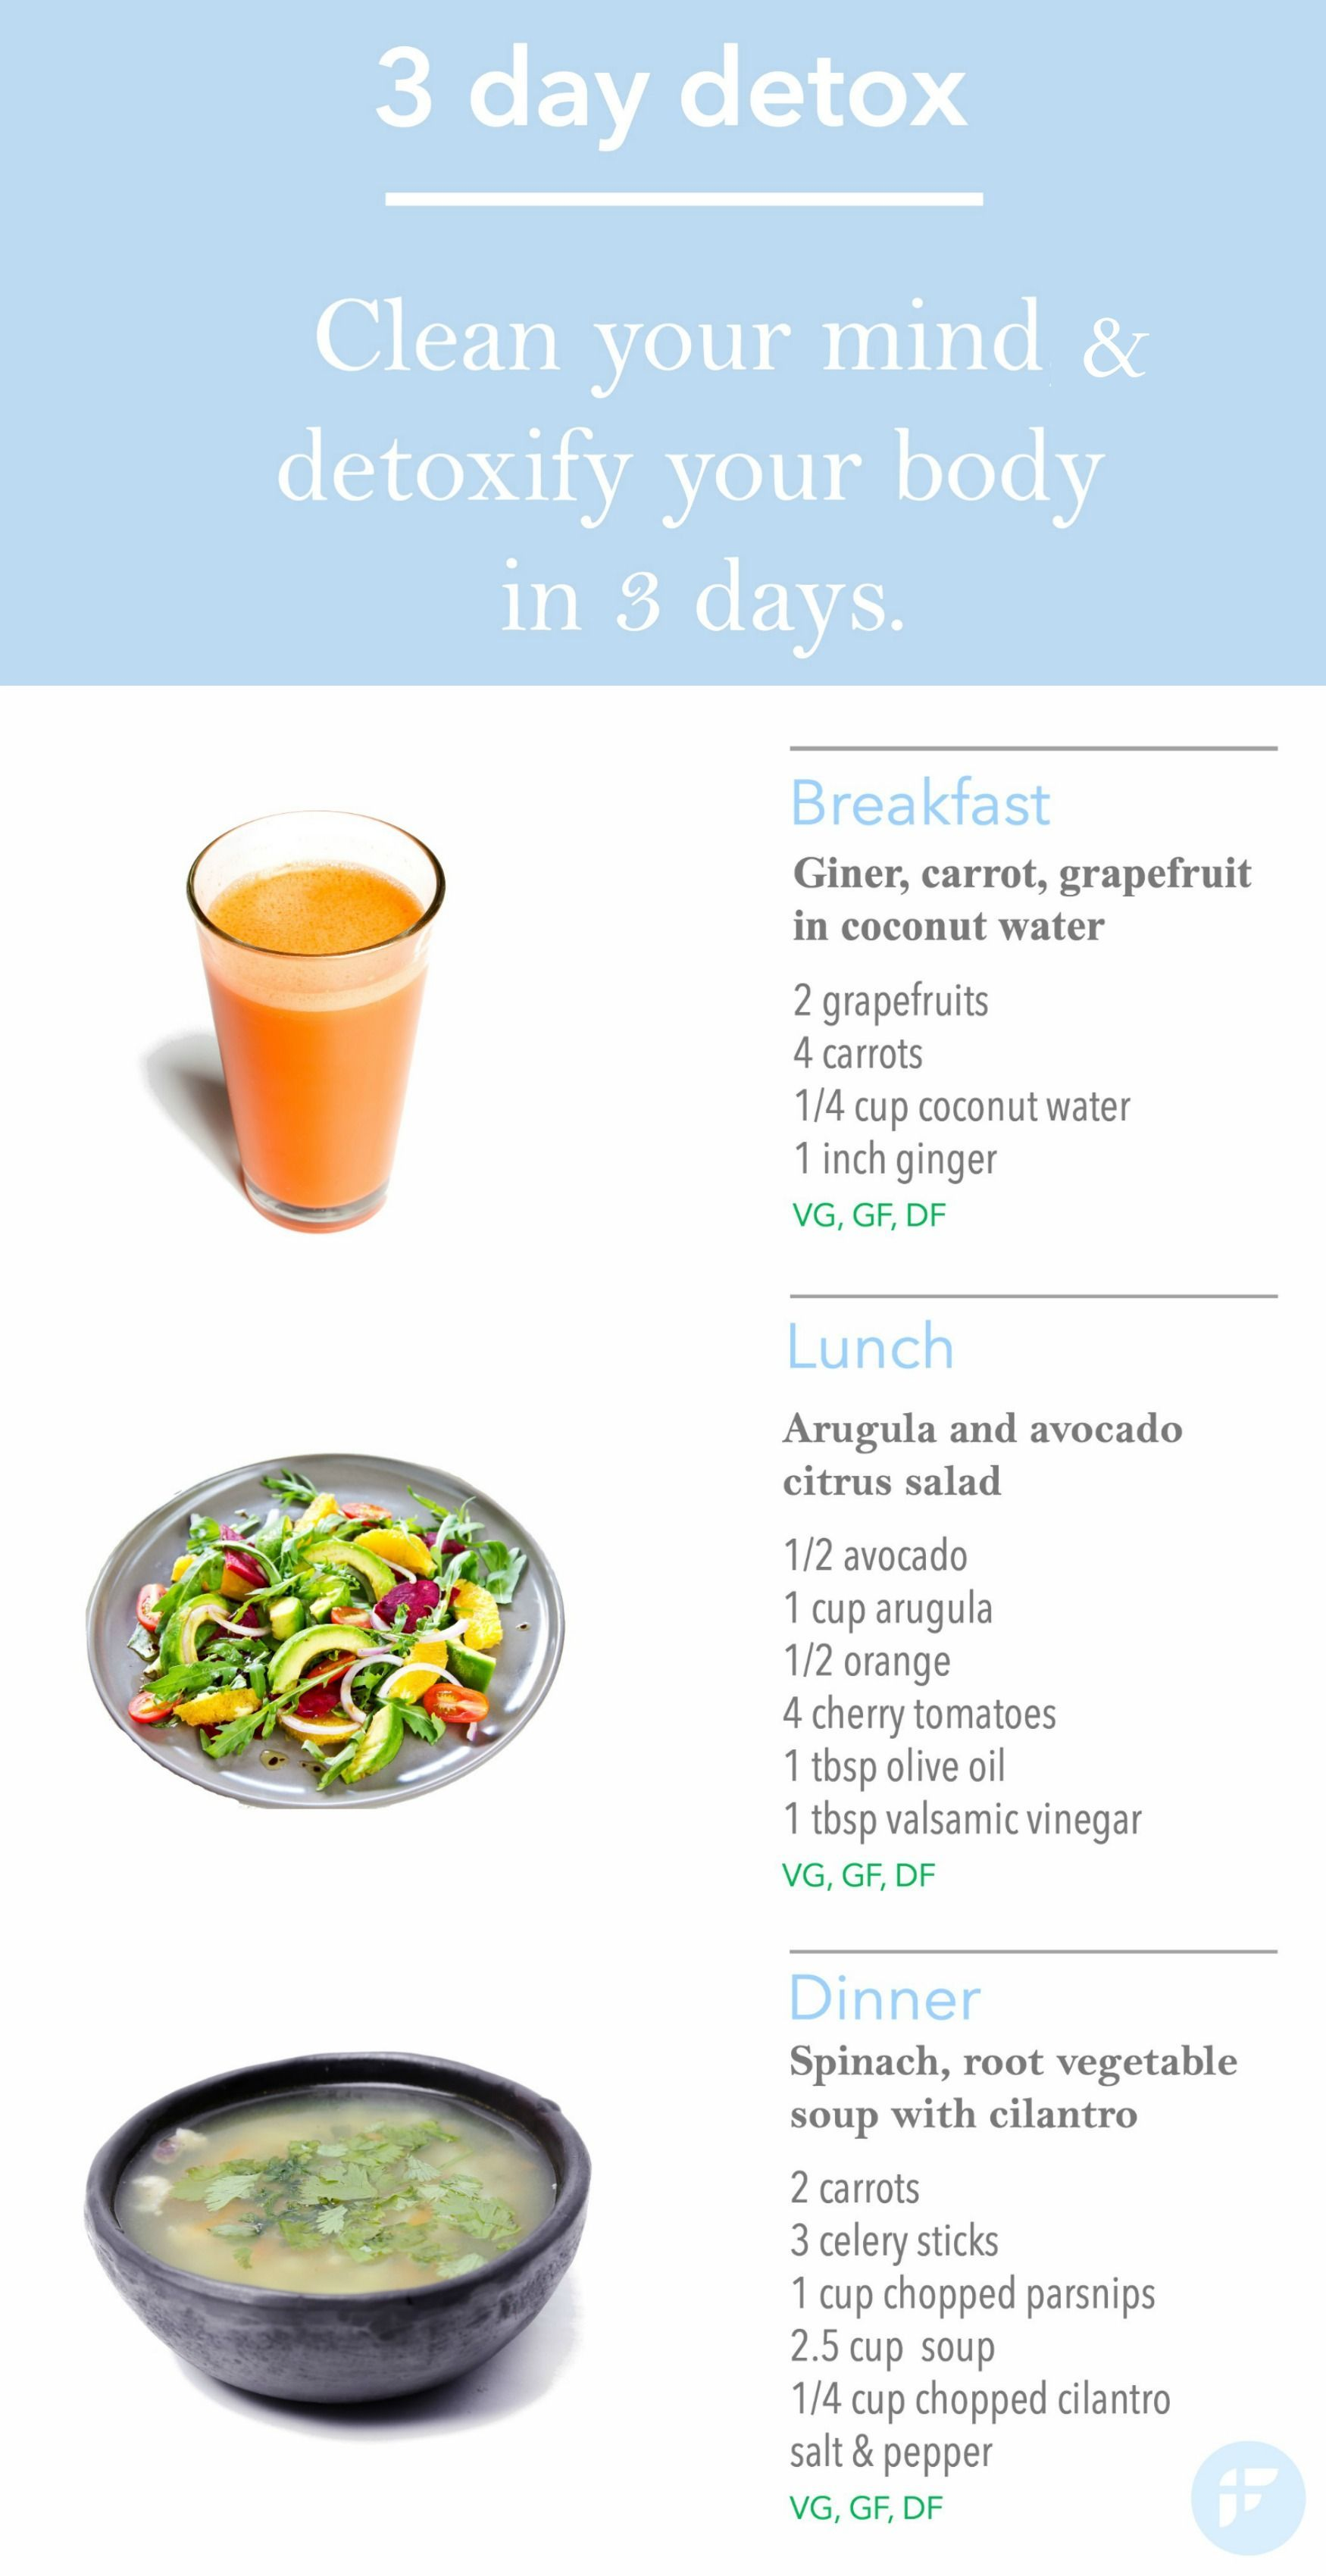 3 Day Detox Plan To Jumpstart Your Way Better Health No Fasting That Nourishes Body With Delicious Meals Cooked Whole Foods Are Easy